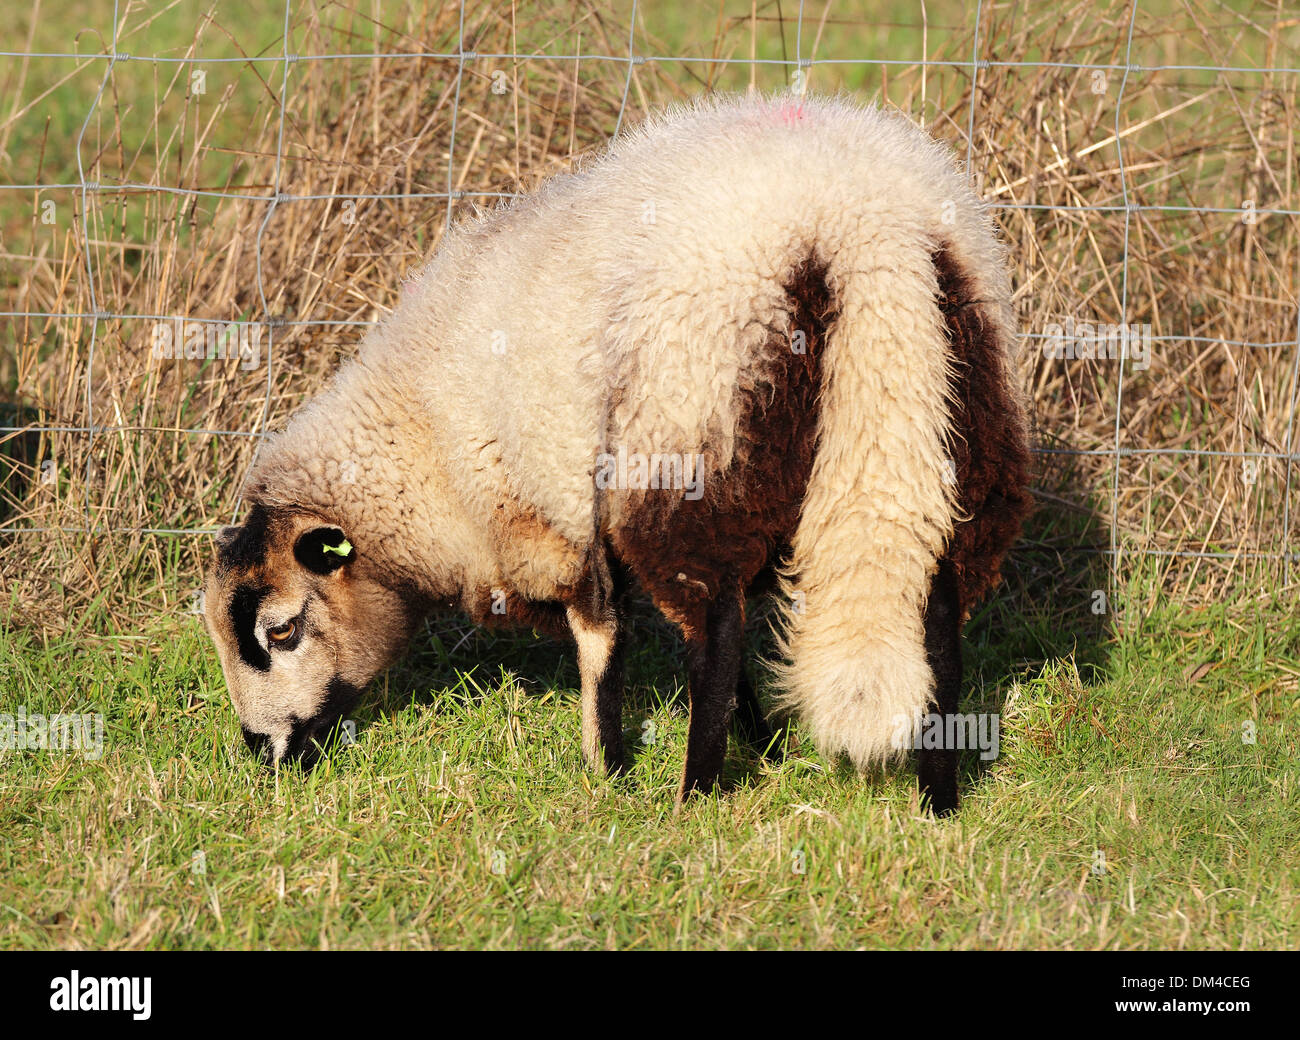 Woolly Sheep in an English Meadow - Stock Image